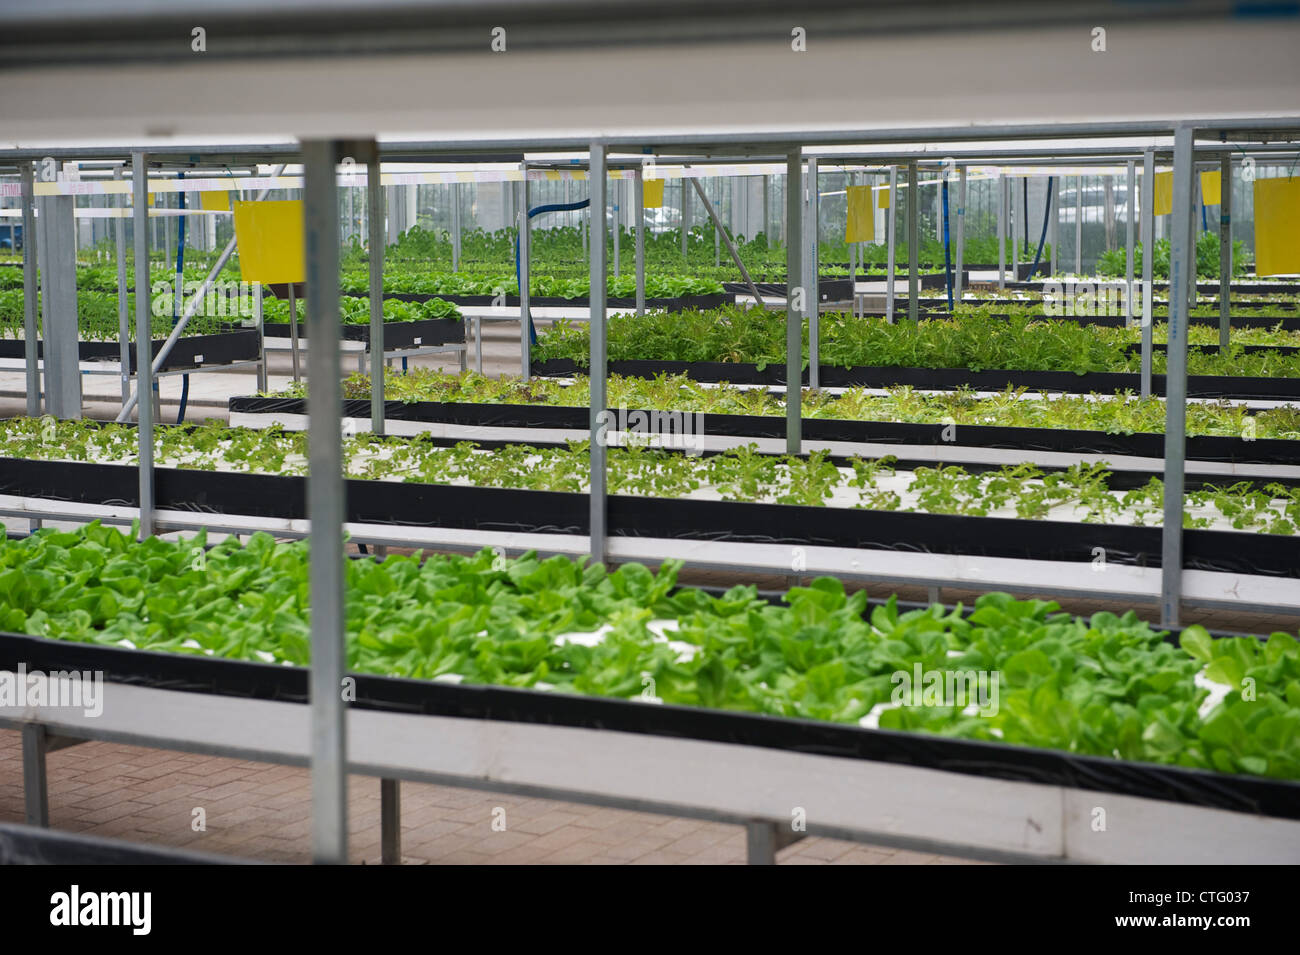 Vegetable grown with nutrient fluid in China. - Stock Image